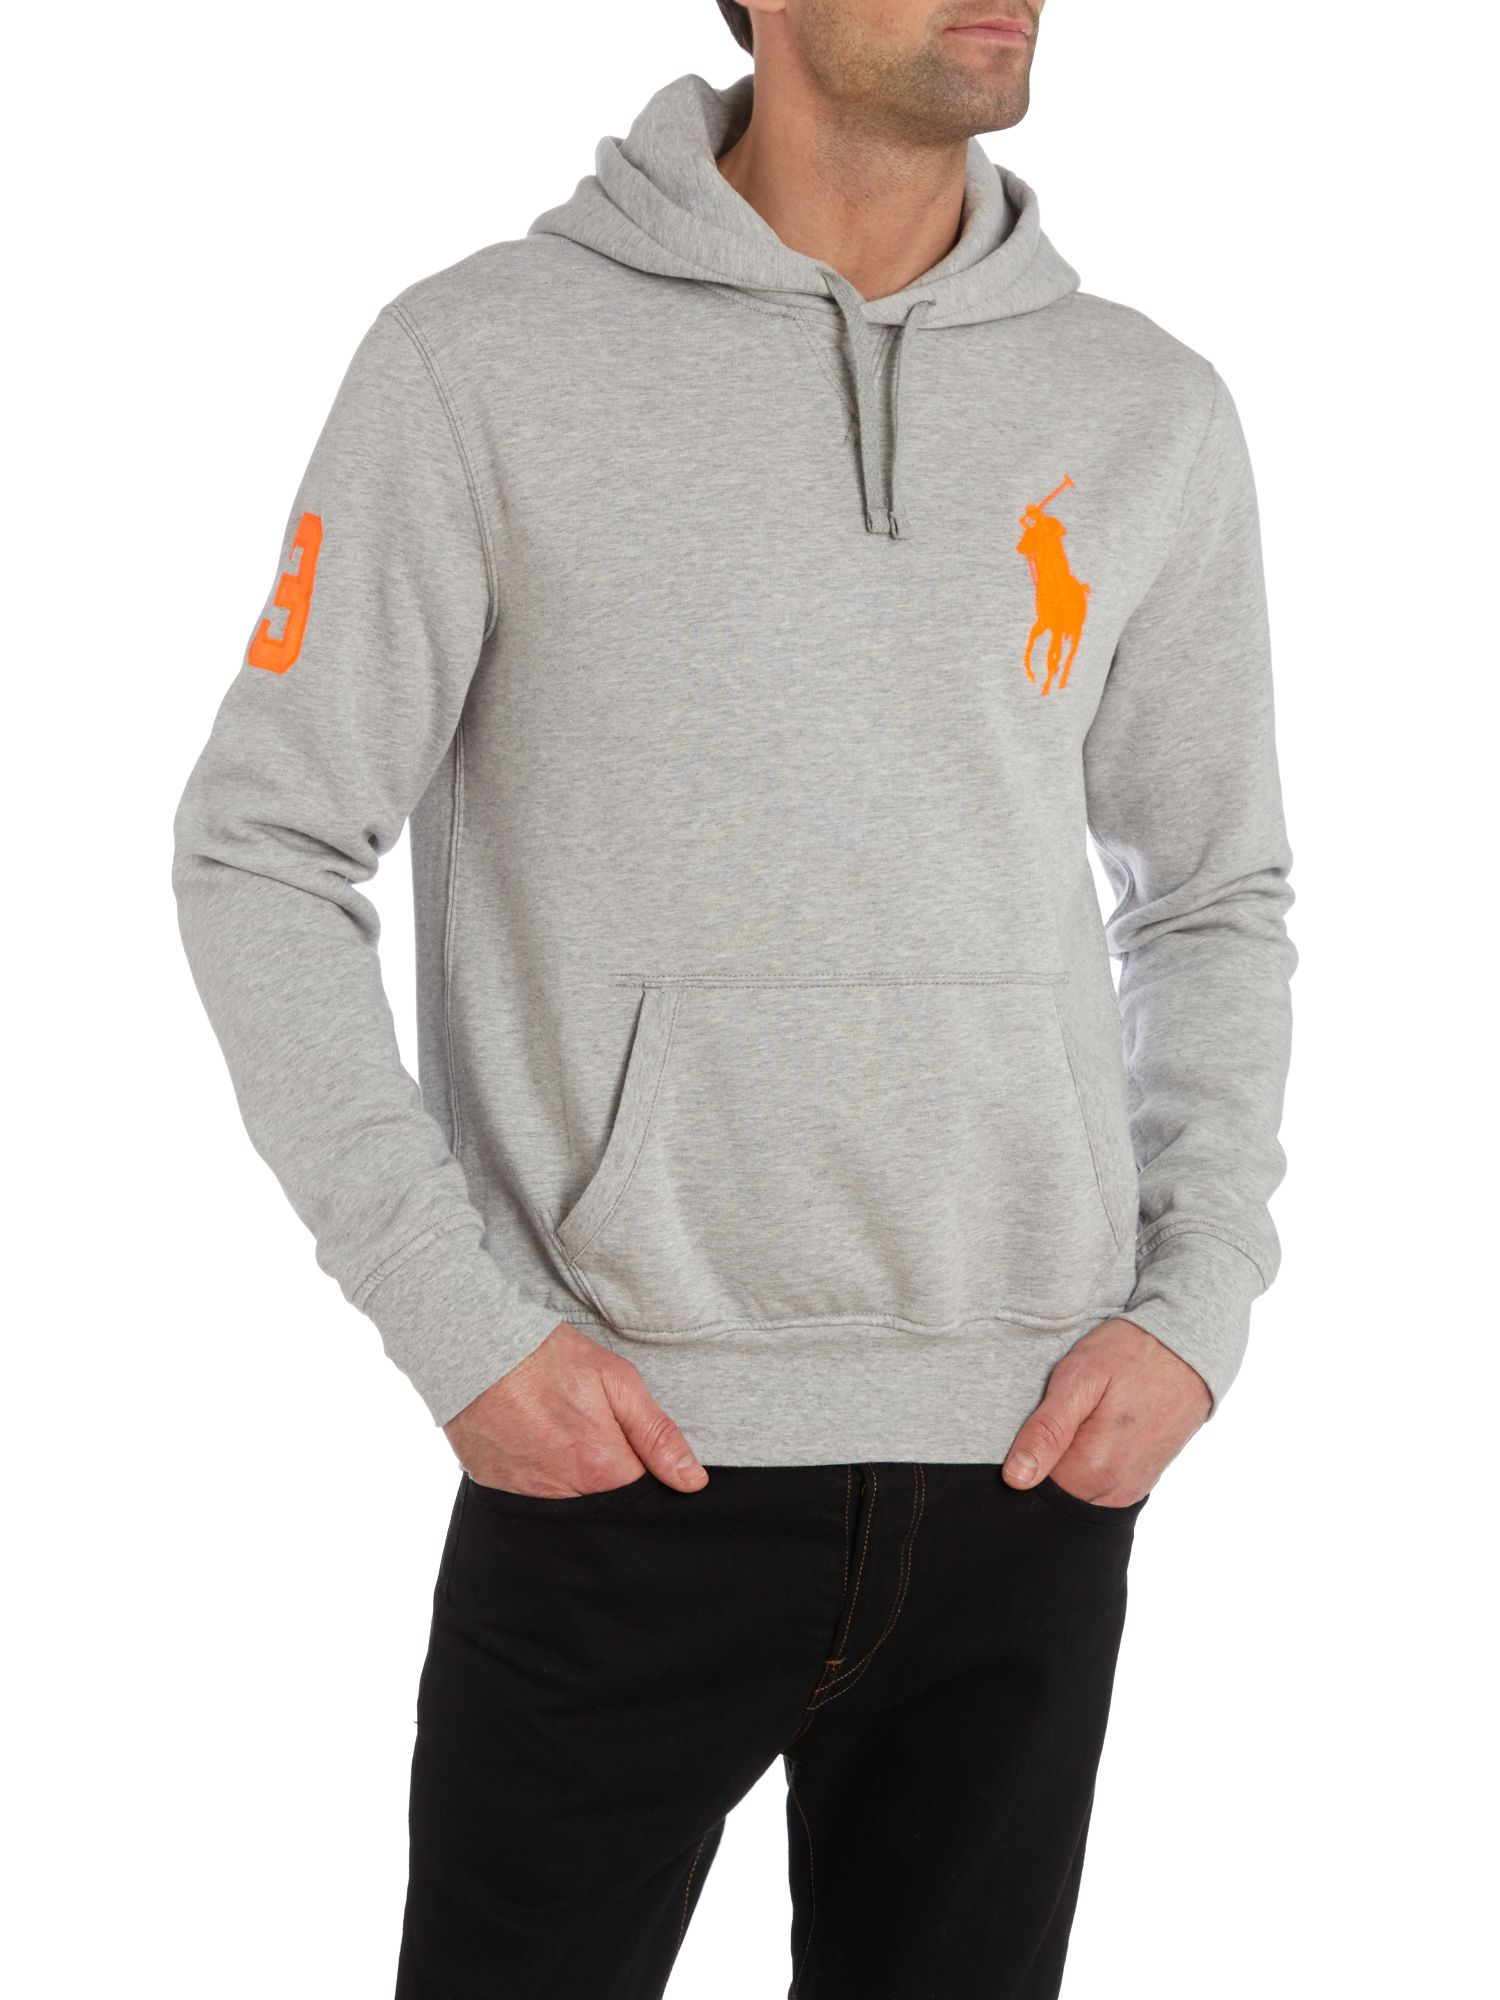 Polo ralph lauren Big Pony Player Fleece Hooded Sweatshirt in Gray for Men (Grey Marl